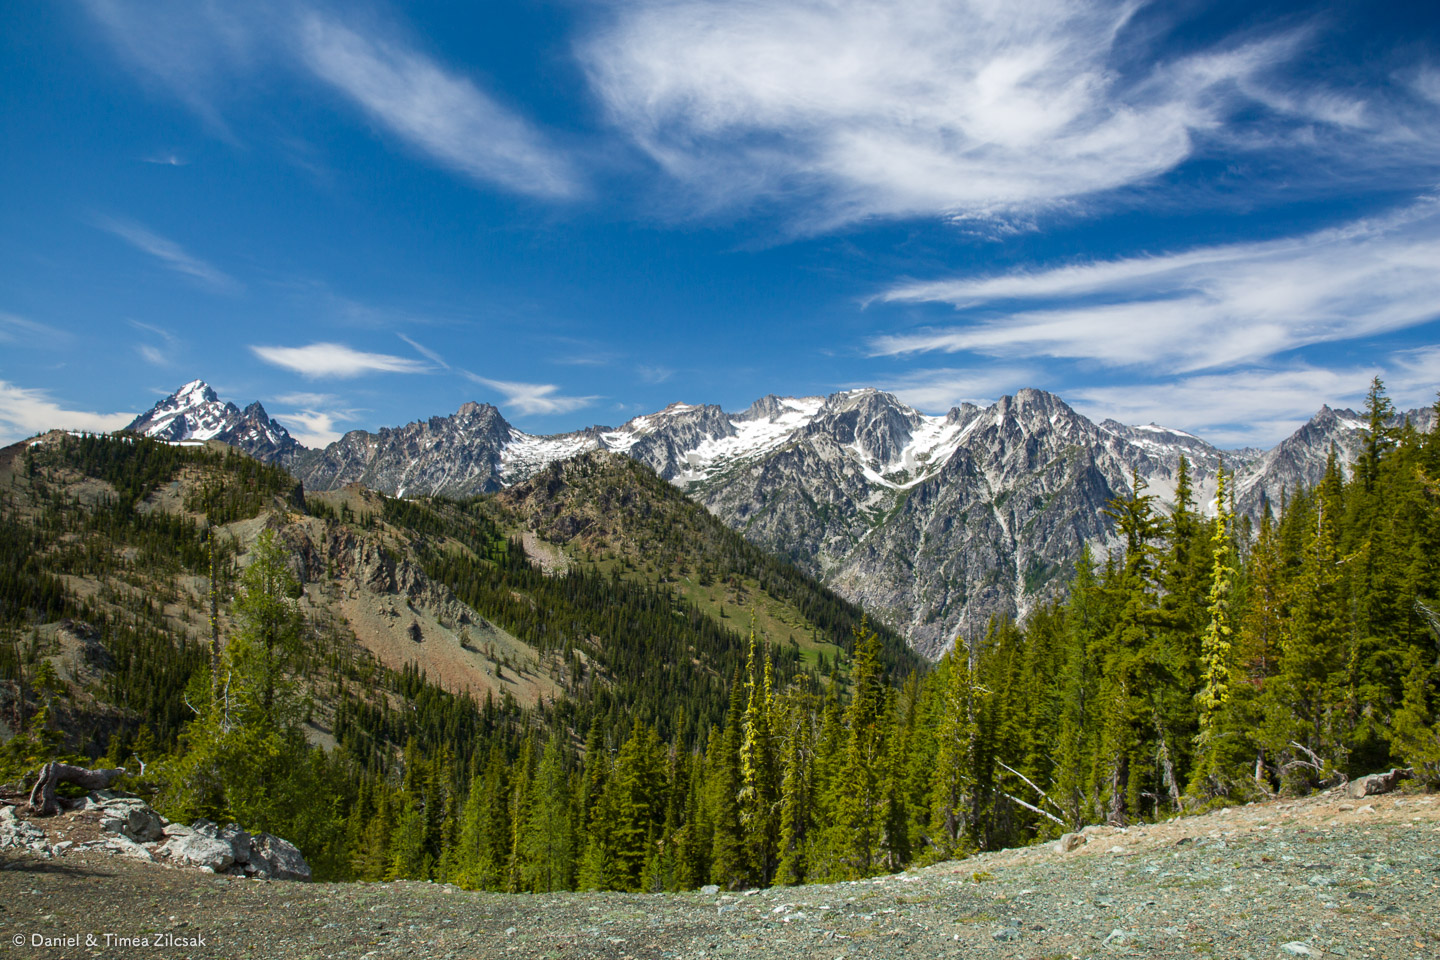 View of the Enchantments peaks in the Stuart Range from Navaho Pass, Little Annapurna is straight in the middle and Mount Stuart is the leftmost peak